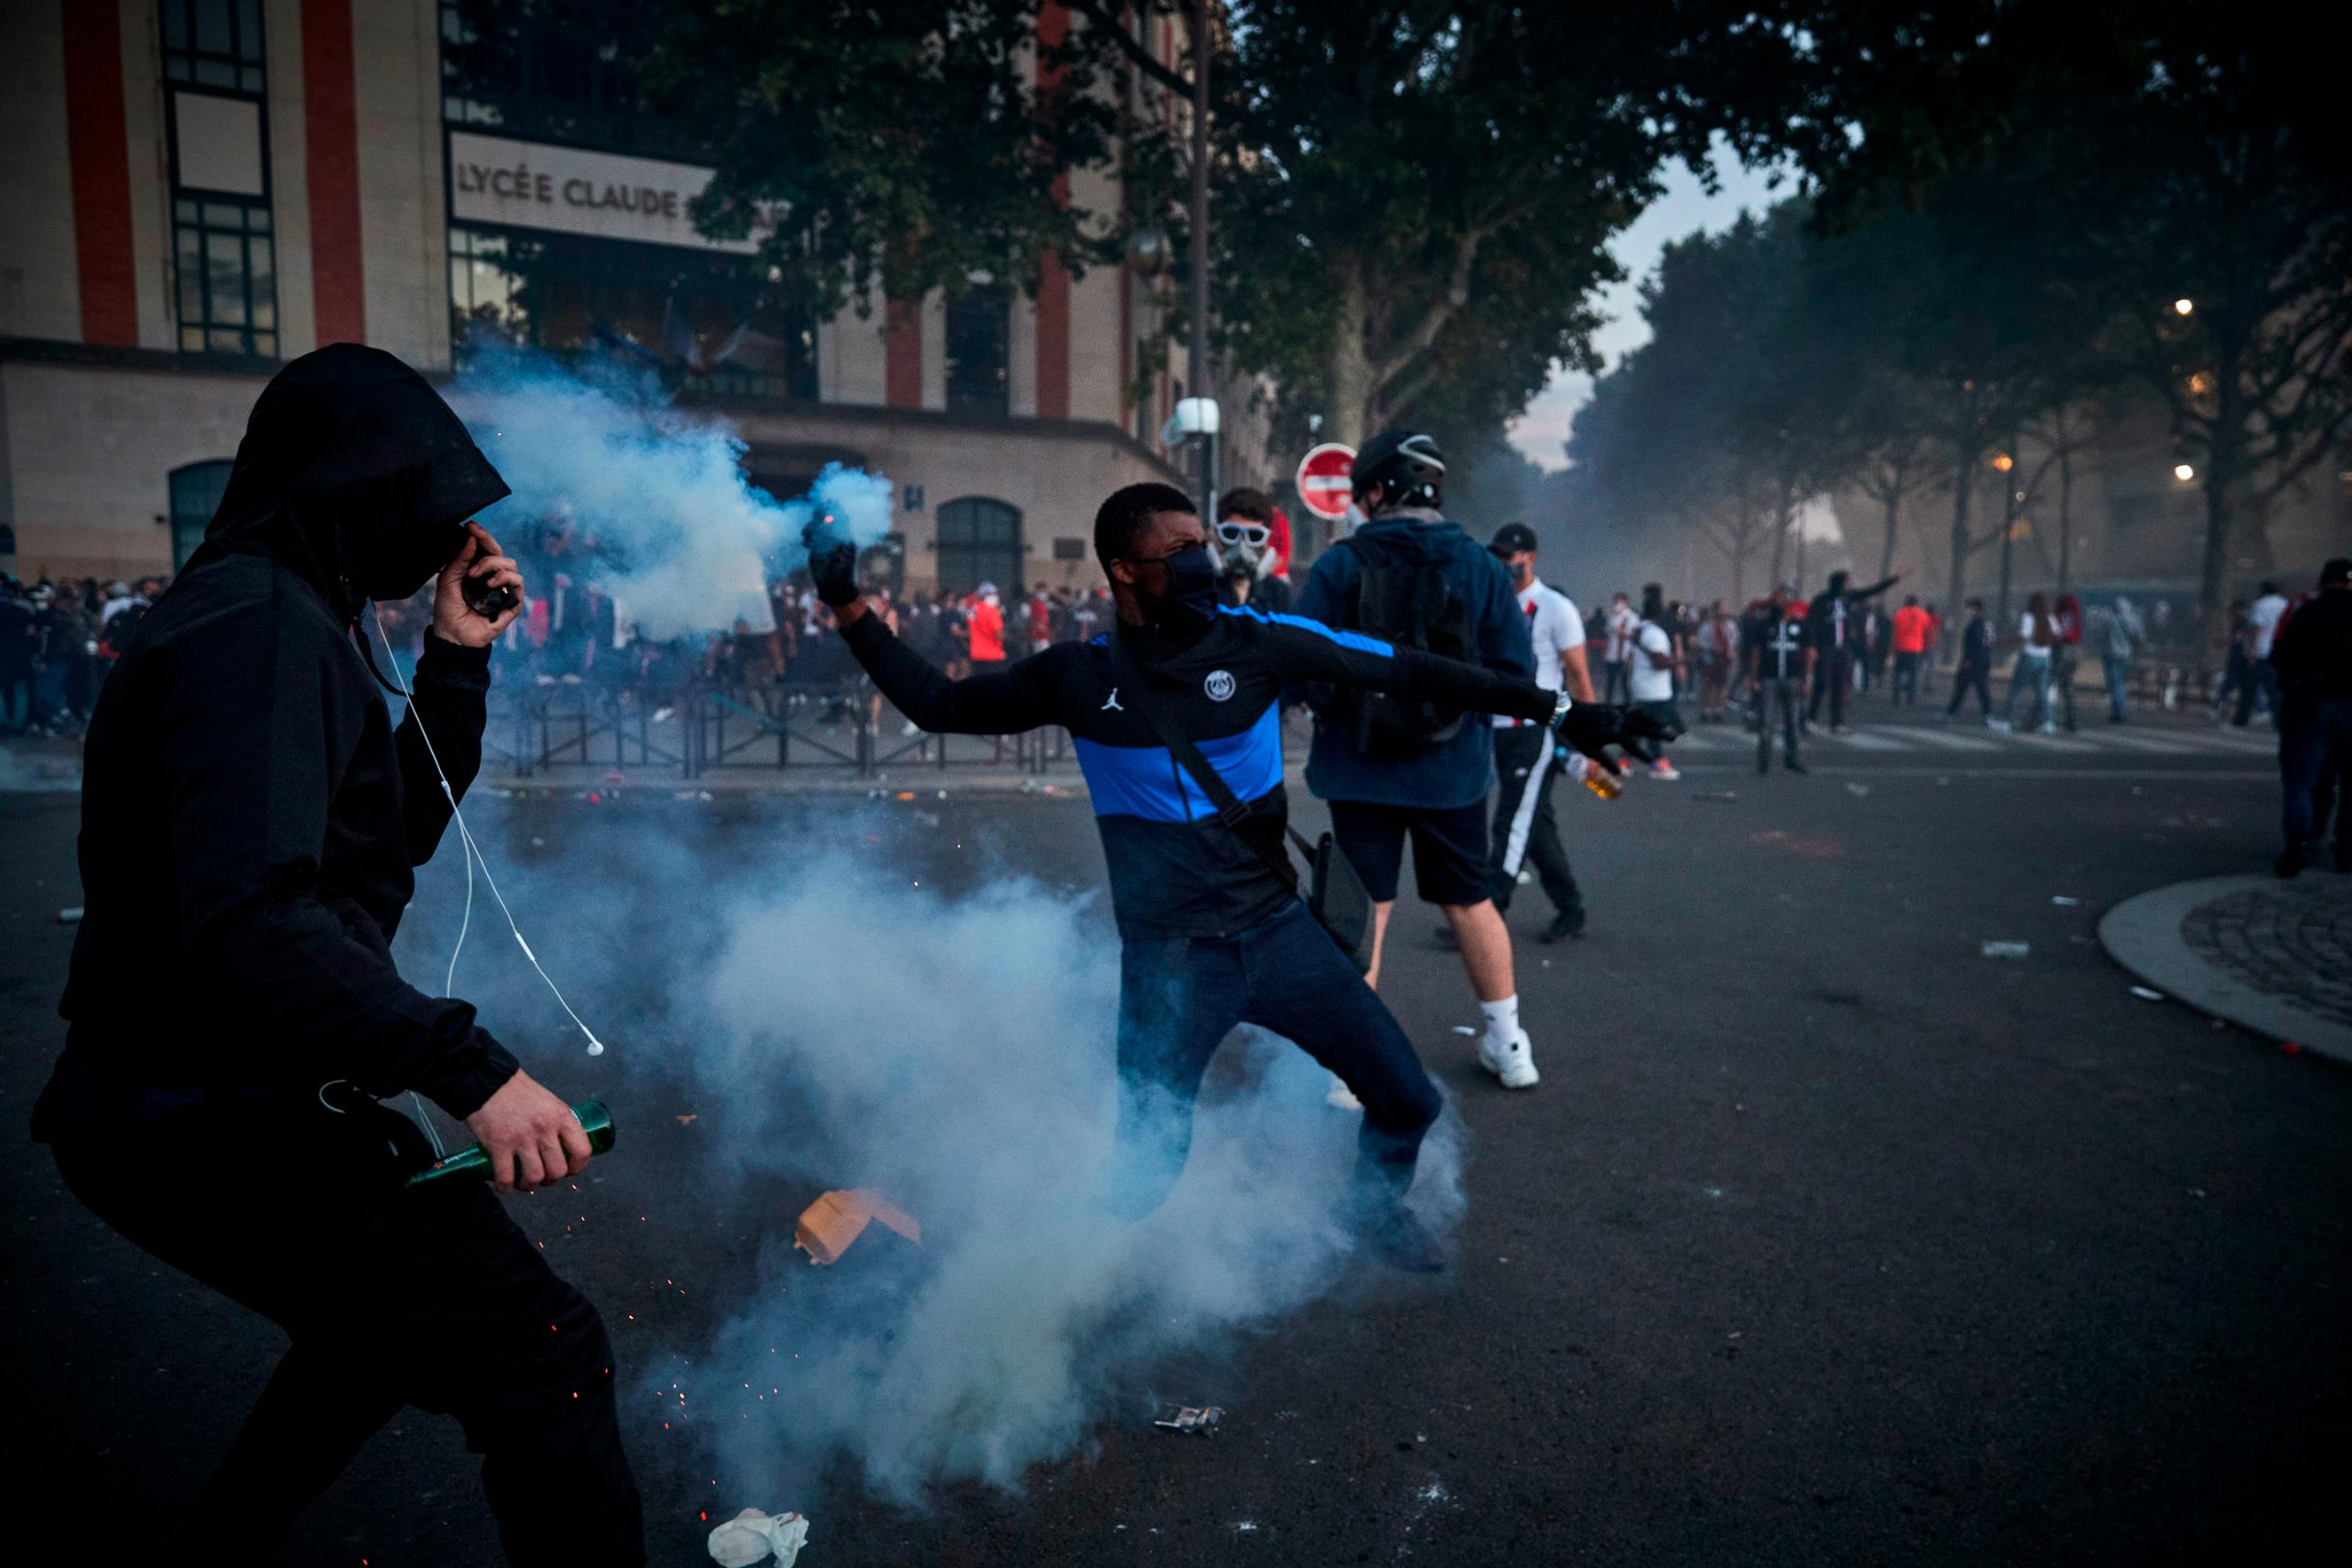 148 arrested as fans clash with riot police in Paris after PSG's Champions League final defeat